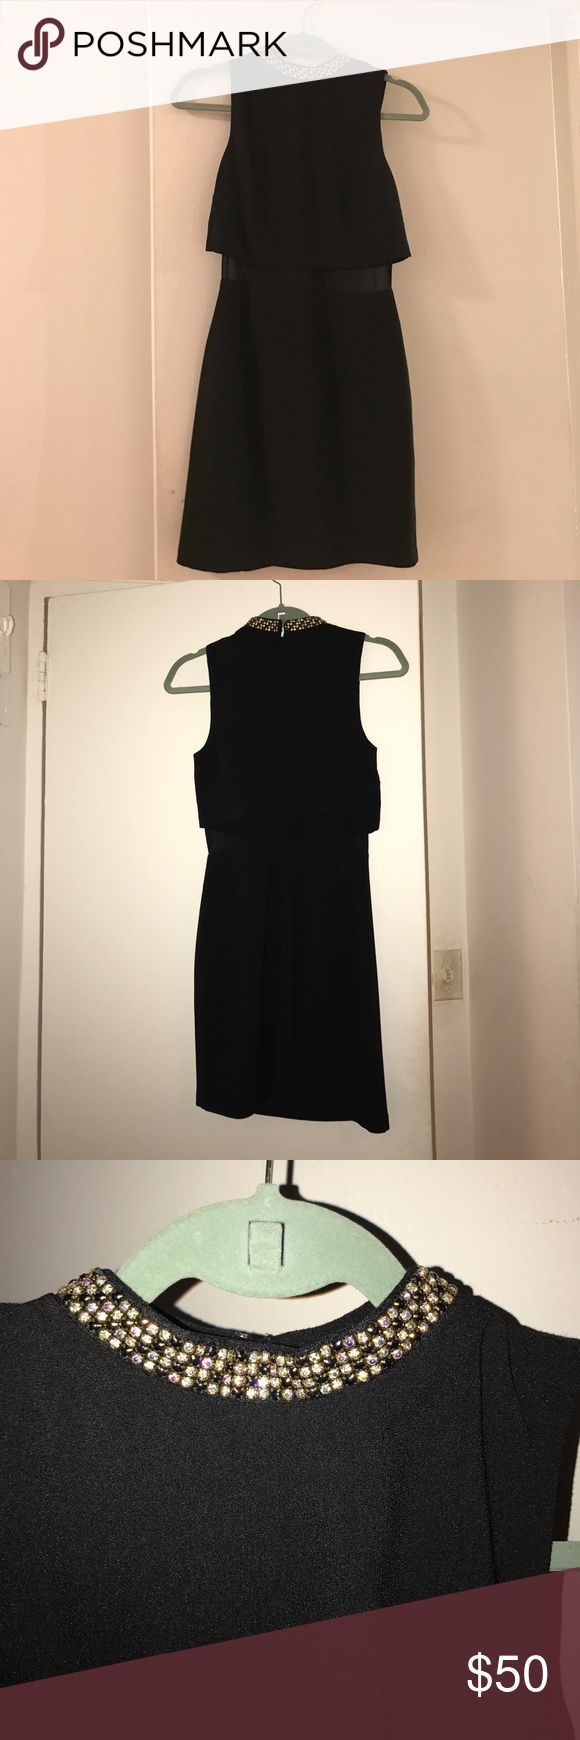 ASOS cocktail dress. ASOS black cocktail dress with detailed collar. Size 2. Excellent condition. Only worn one time. ASOS Dresses Mini